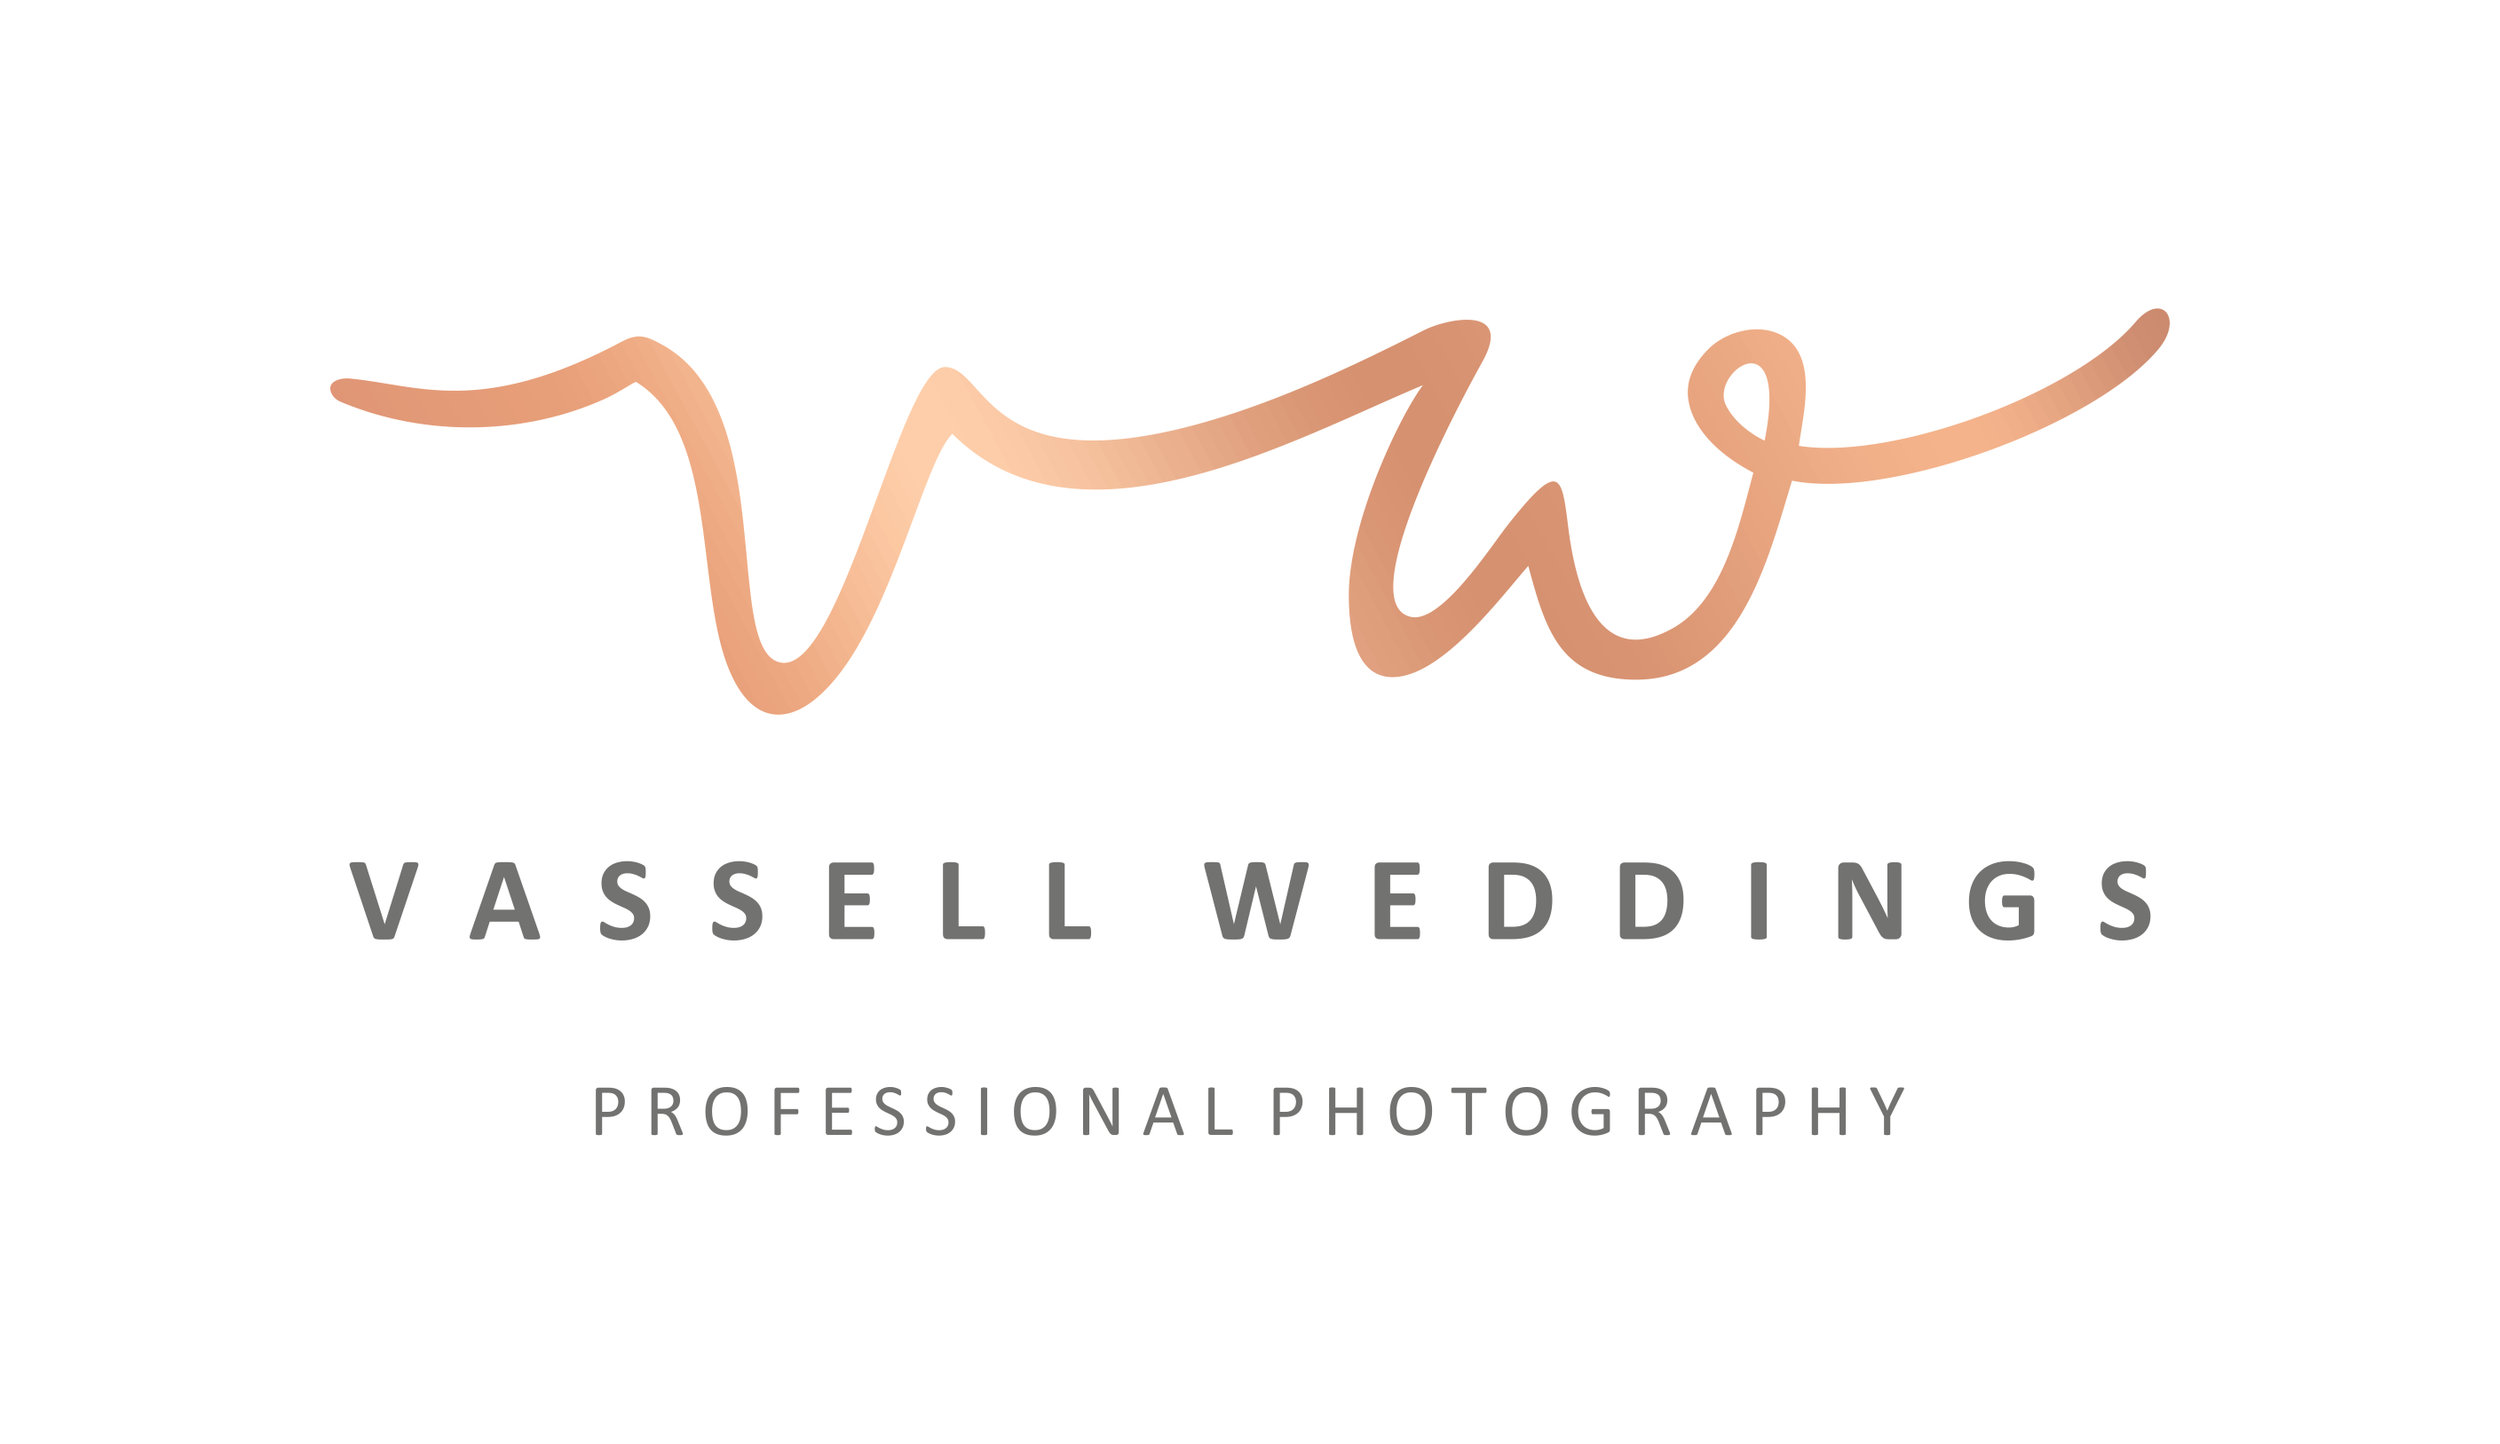 let's chat - EMAIL: ricky@vassellweddings.co.uk    PHONE: 07743 066212We will get back to you as soon as possible.  We aim to read and reply to Wedding Enquires within 24 business hours, Monday to Friday 10:00am - 8:00pm GMT.  If you haven't heard back from us please check your spam/junk folder as it may be in there.